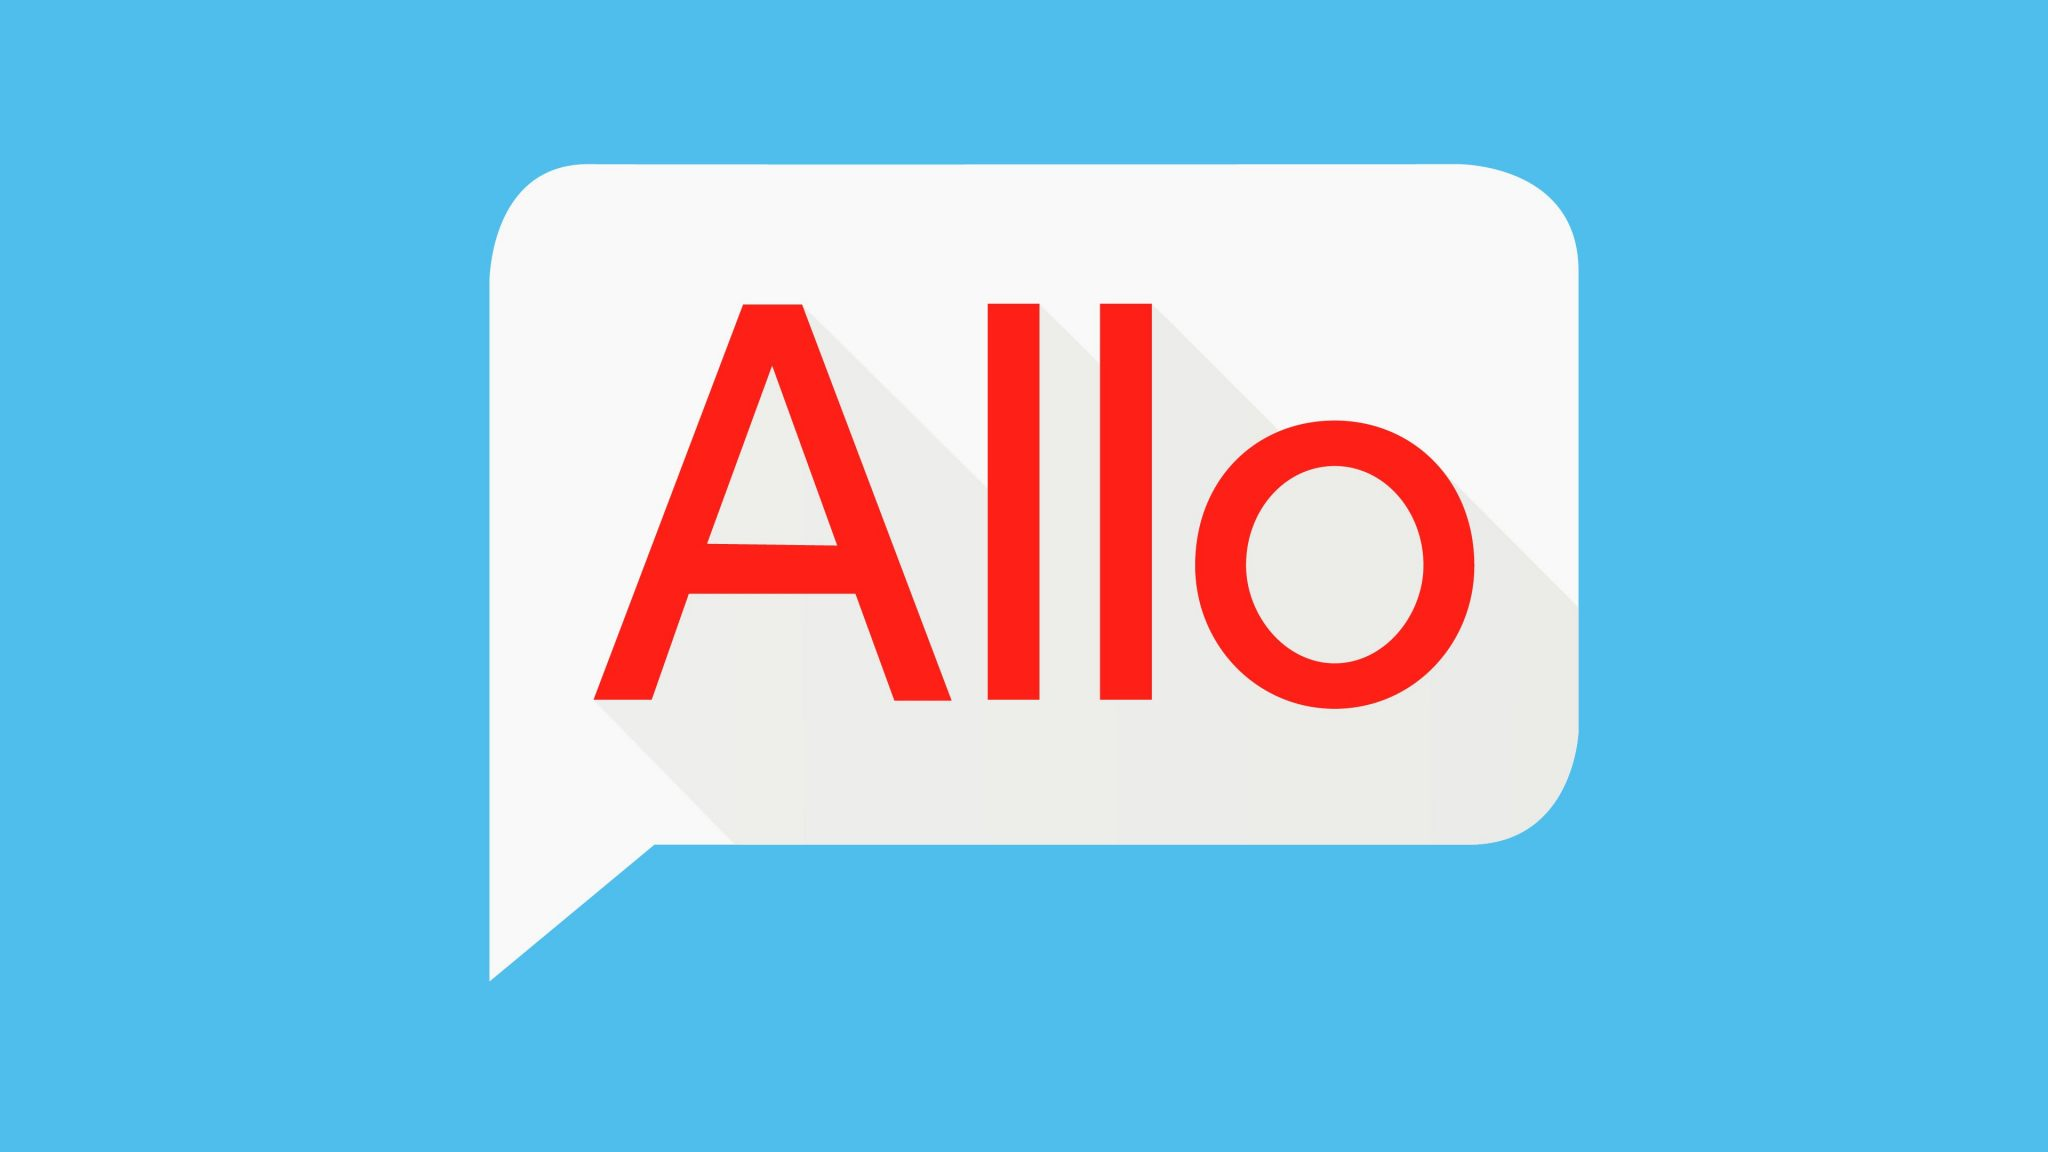 Google's New Messaging App Allo